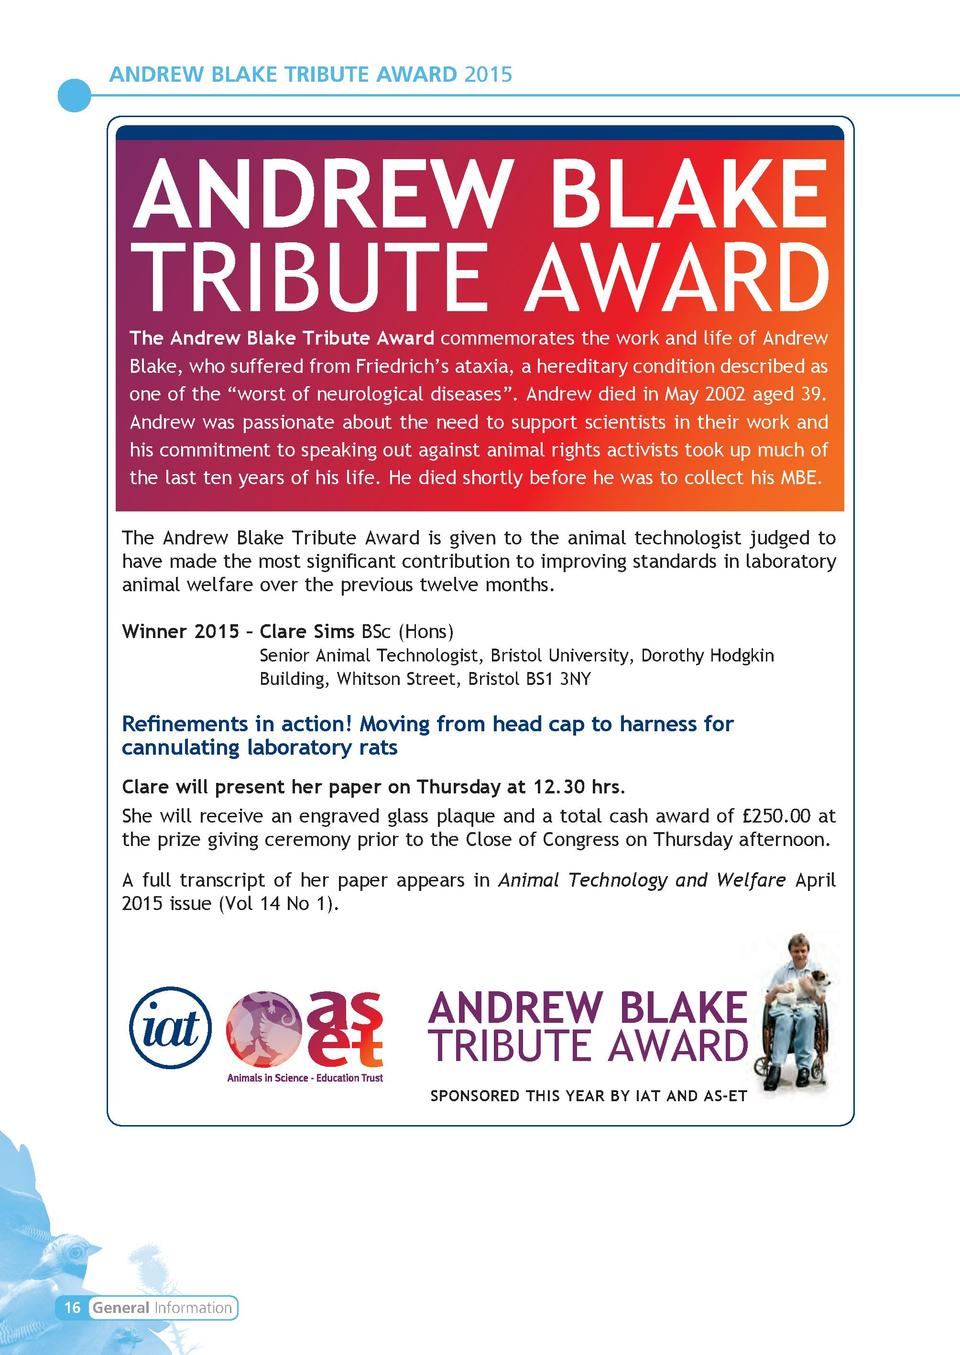 ANDREW BLAKE TRIBUTE AWARD 2015  ANDREW BLAKE TRIBUTE AWARD  The Andrew Blake Tribute Award commemorates the work and life...